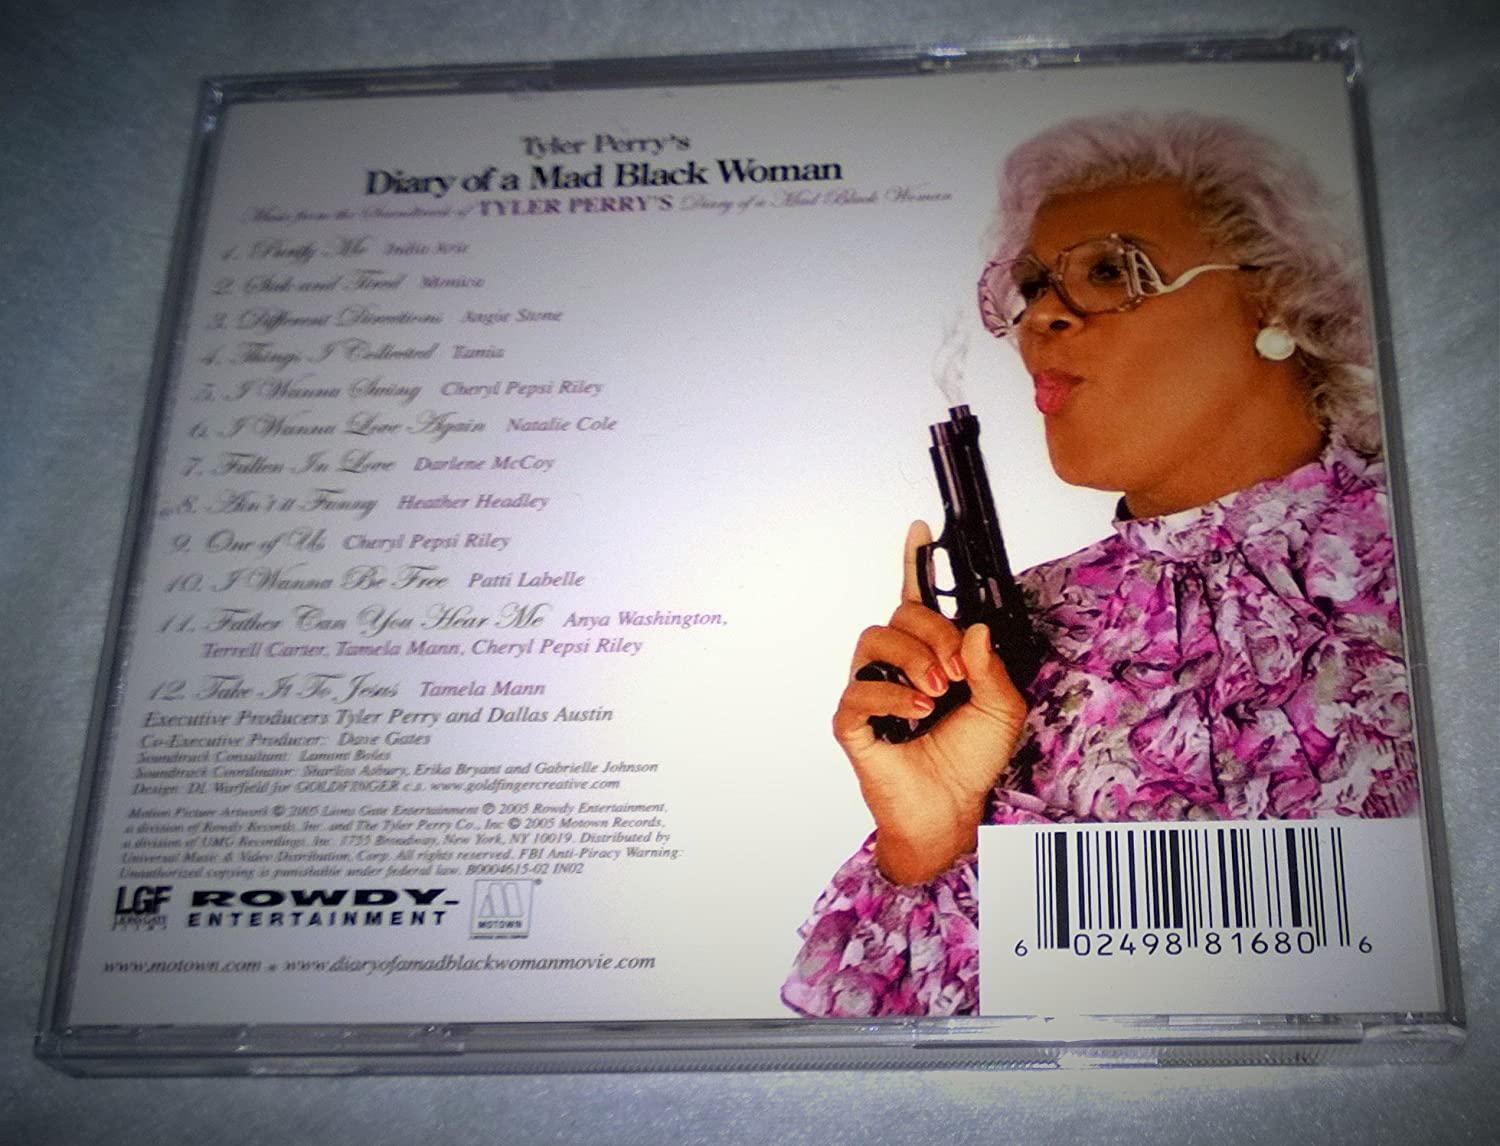 diary of a mad black woman soundtrack mp3 free download